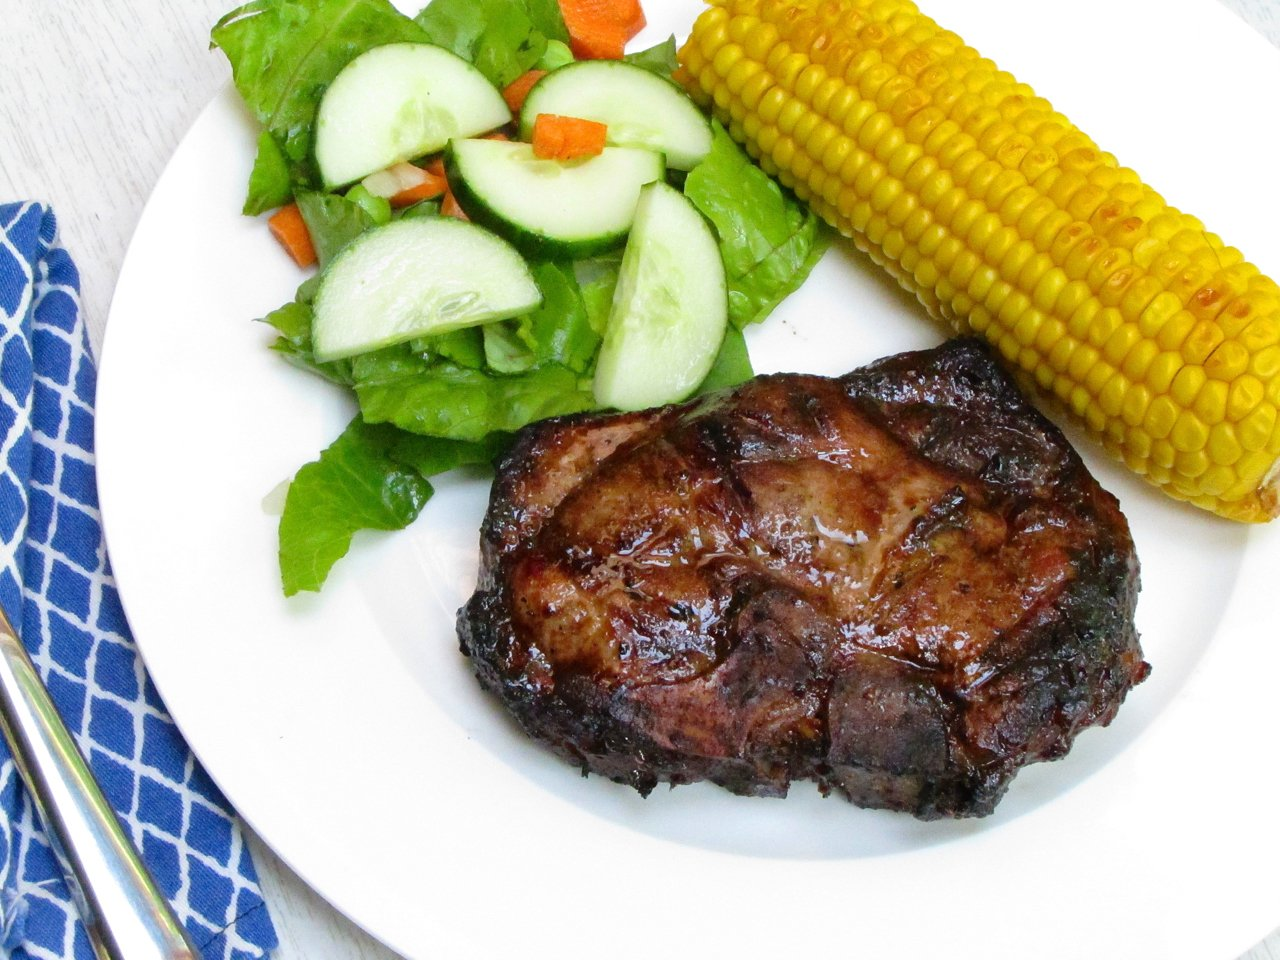 Teriyaki Grilled Pork Chops